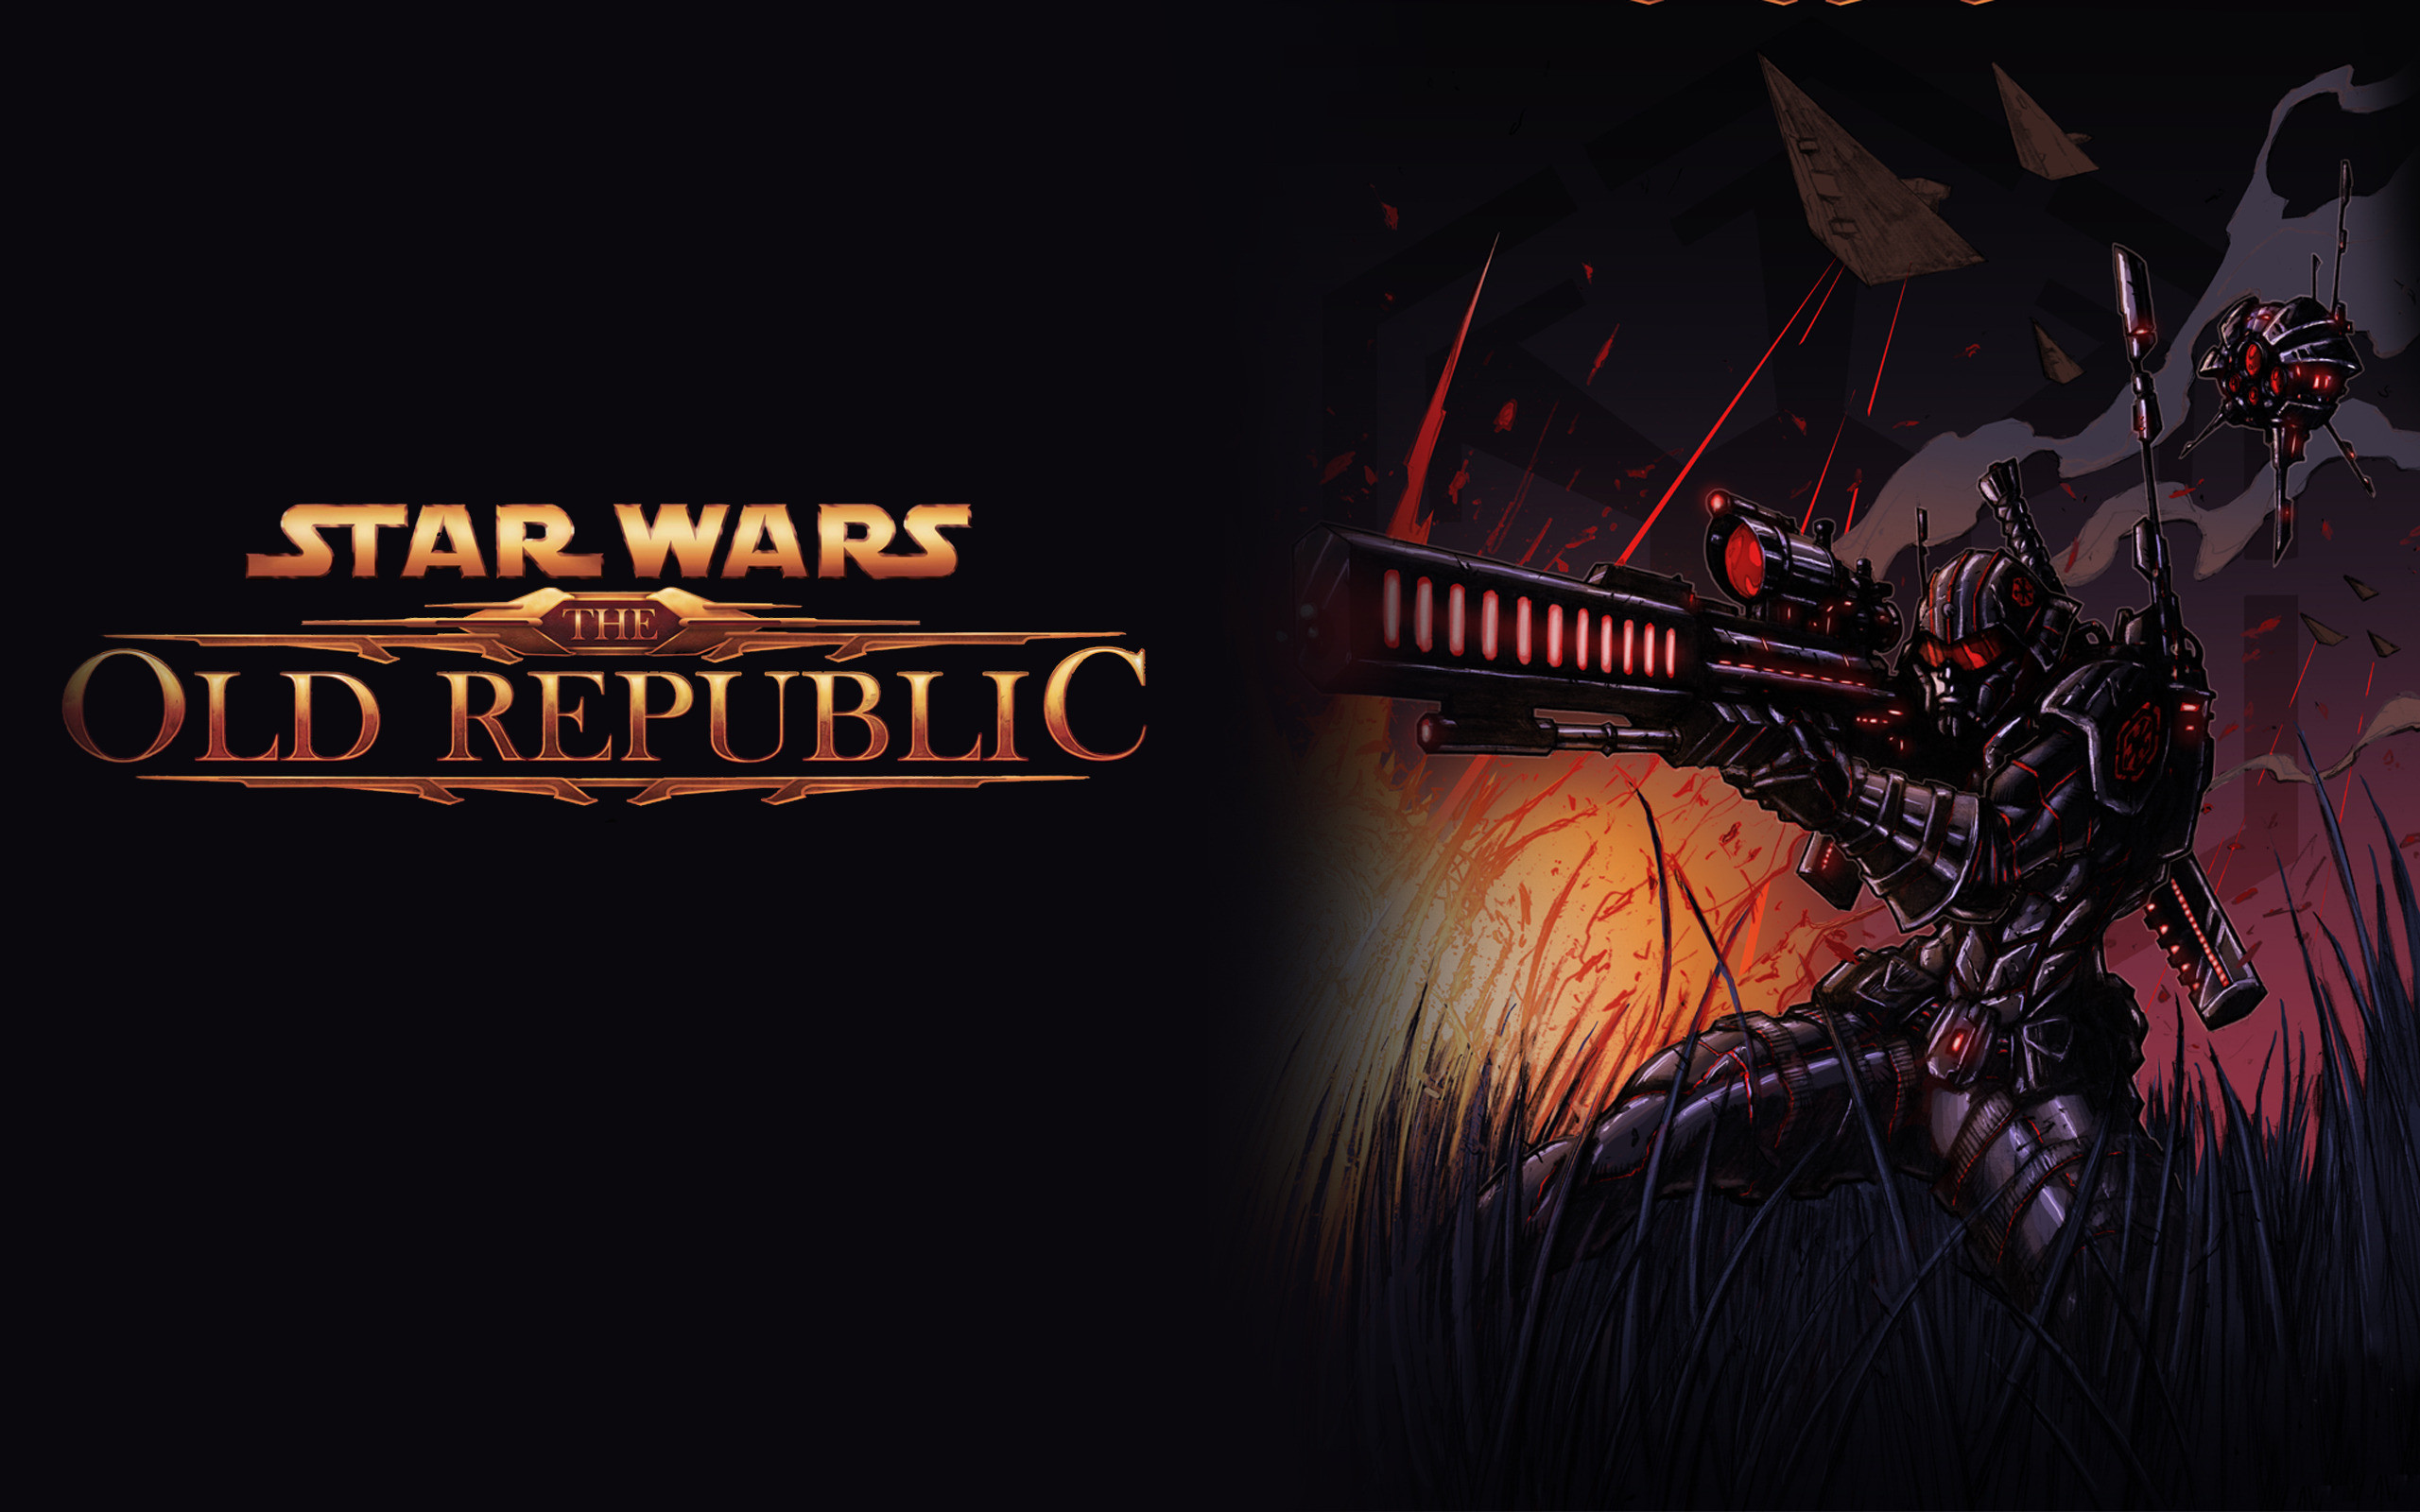 2560x1600 Star Wars: The Old Republic Widescreen Wallpaper